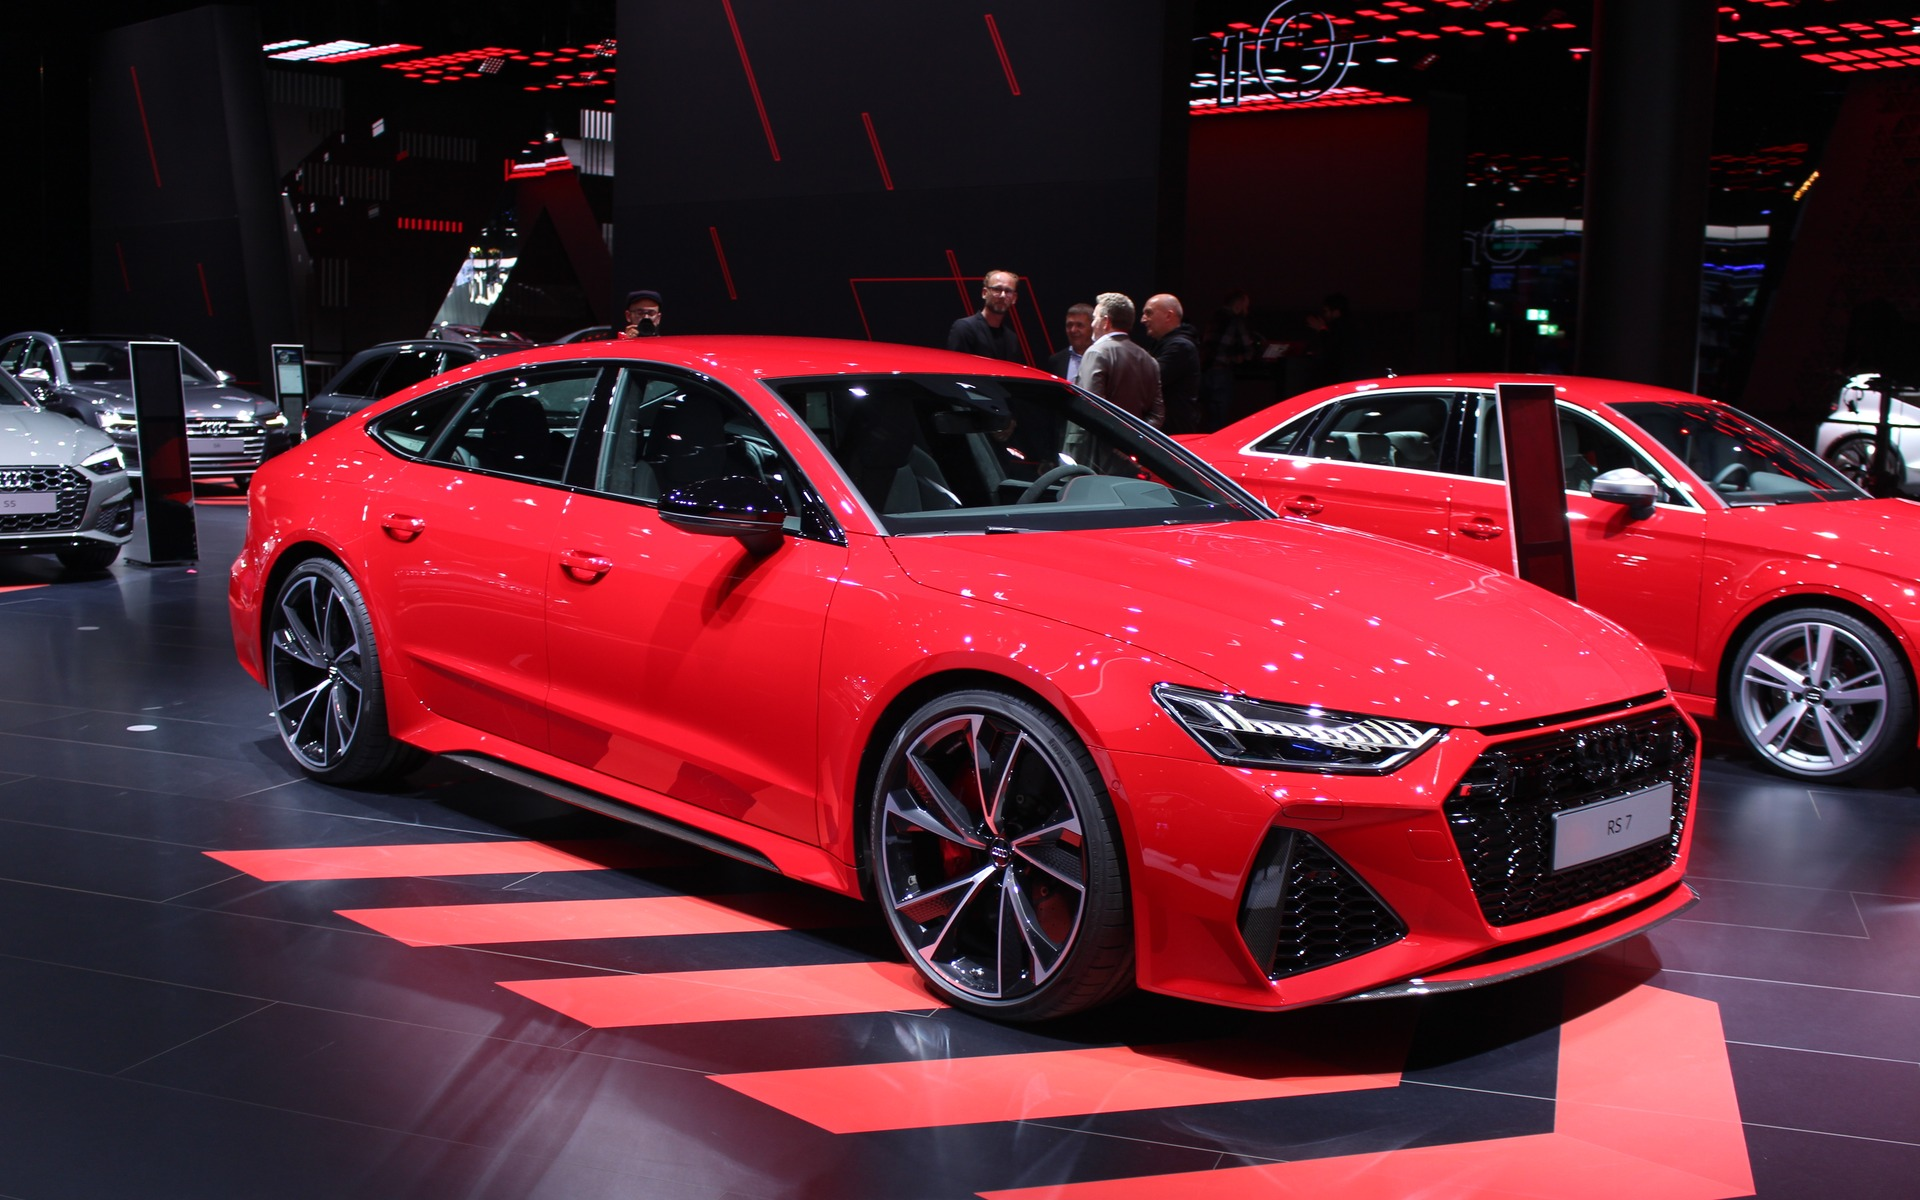 2020 Audi Rs 7 Unleashed With A 590 Hp Twin Turbo V8 The Car Guide